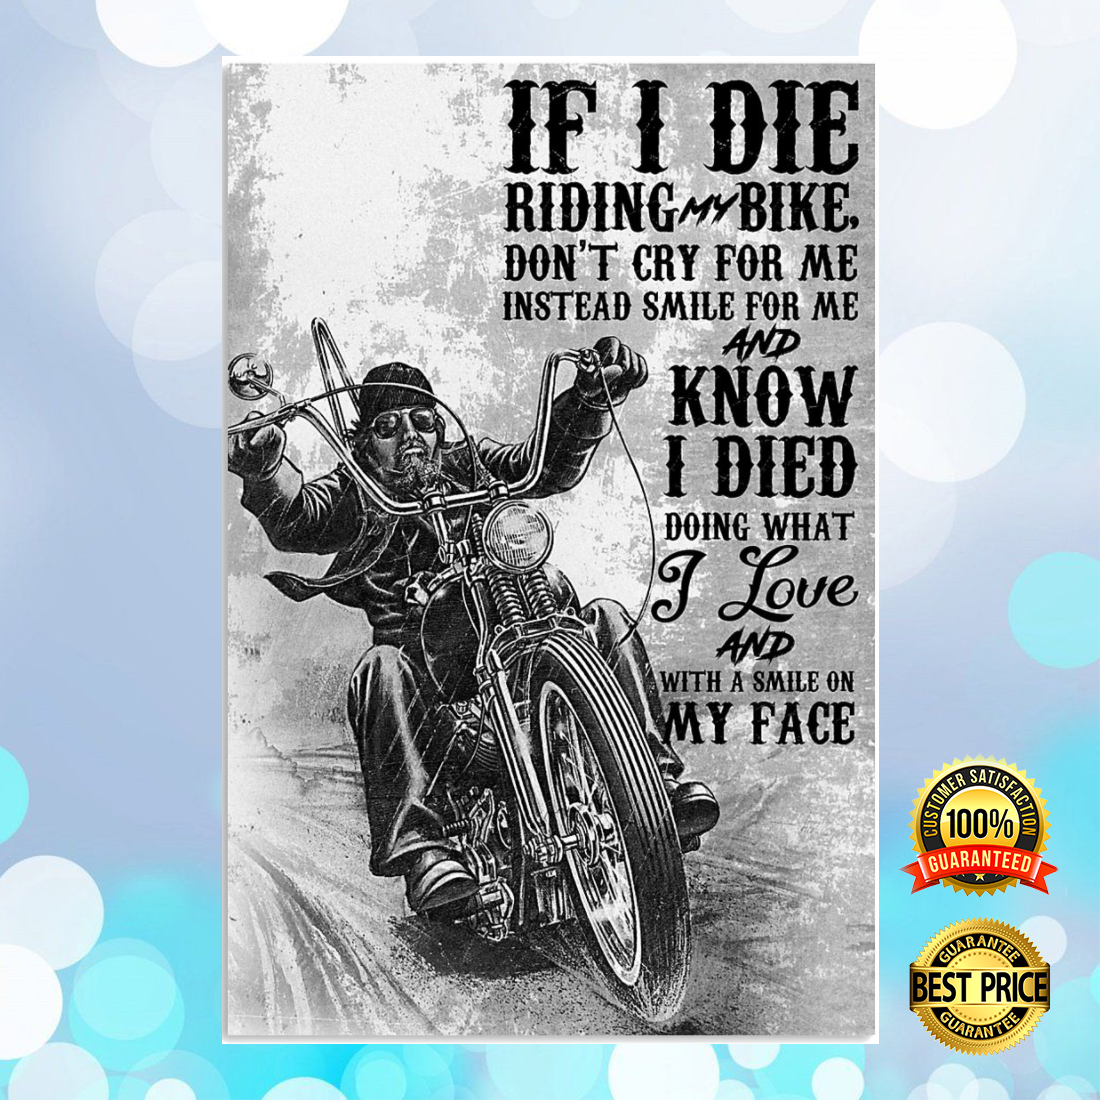 IF I DIE RIDING BIKE DON'T CRY FOR ME INSTEAD SMILE FOR ME POSTER 6